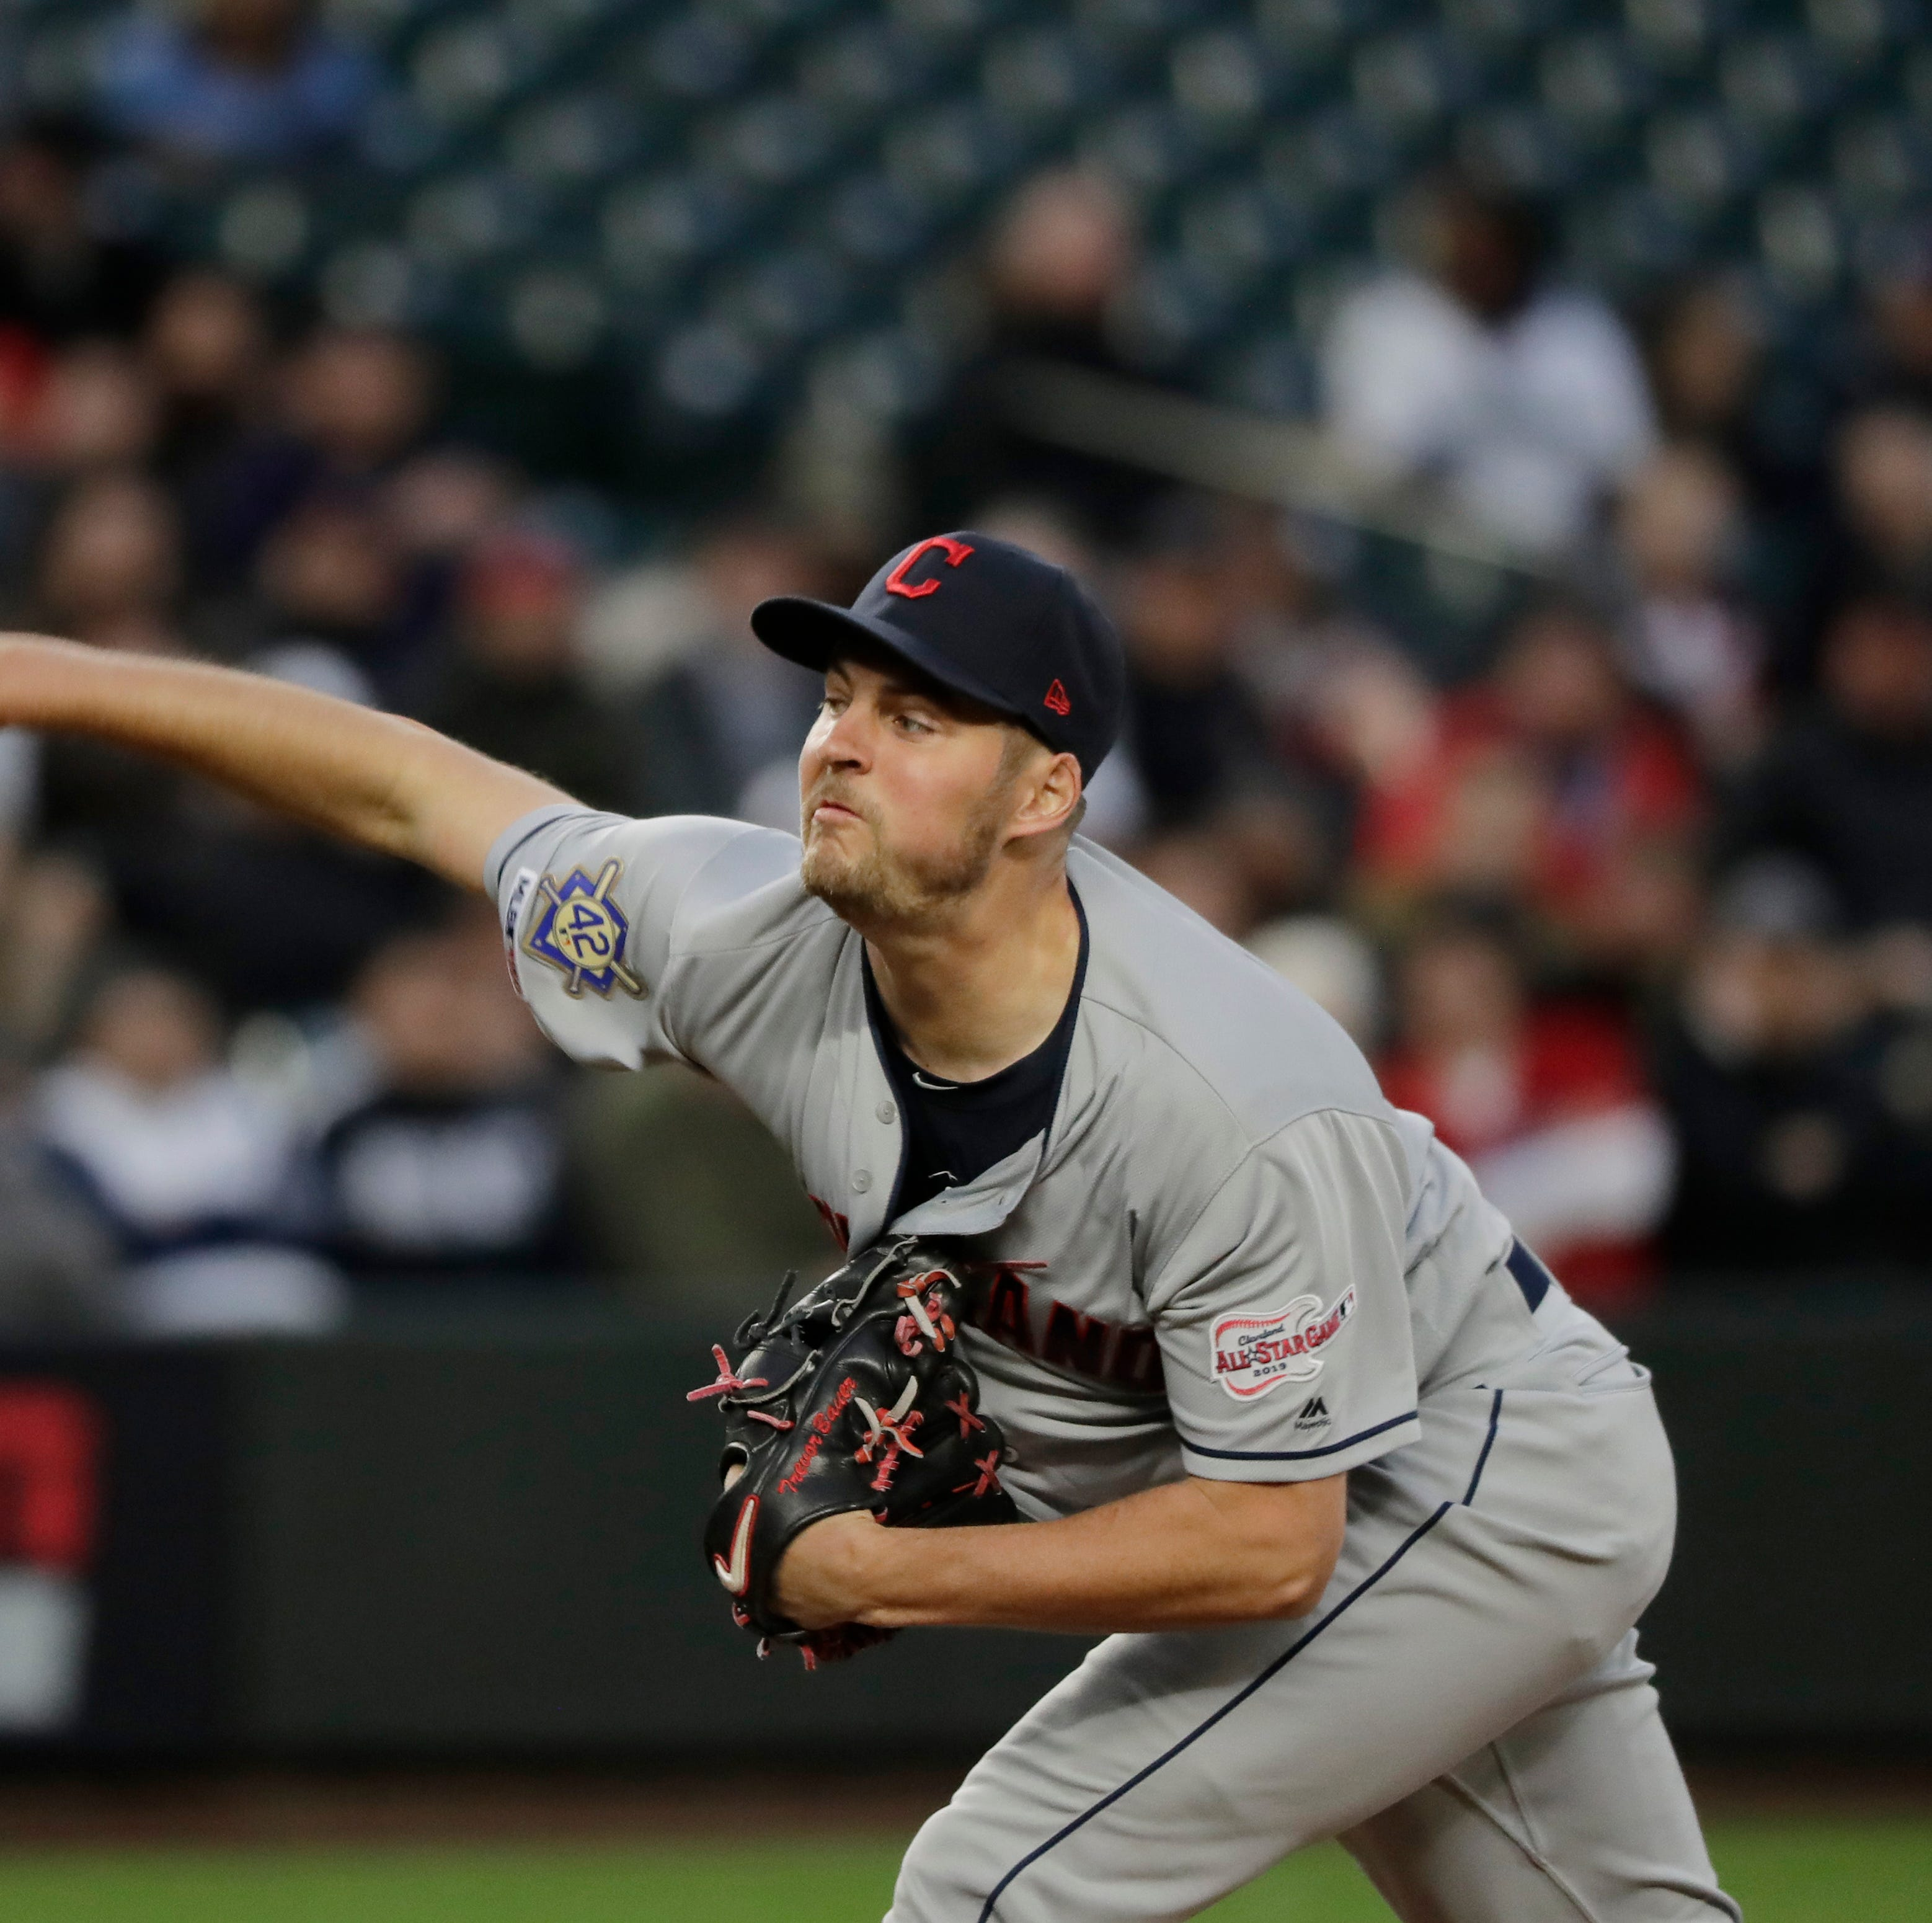 Mariner losing streak hits four with 6-4 loss to Indians